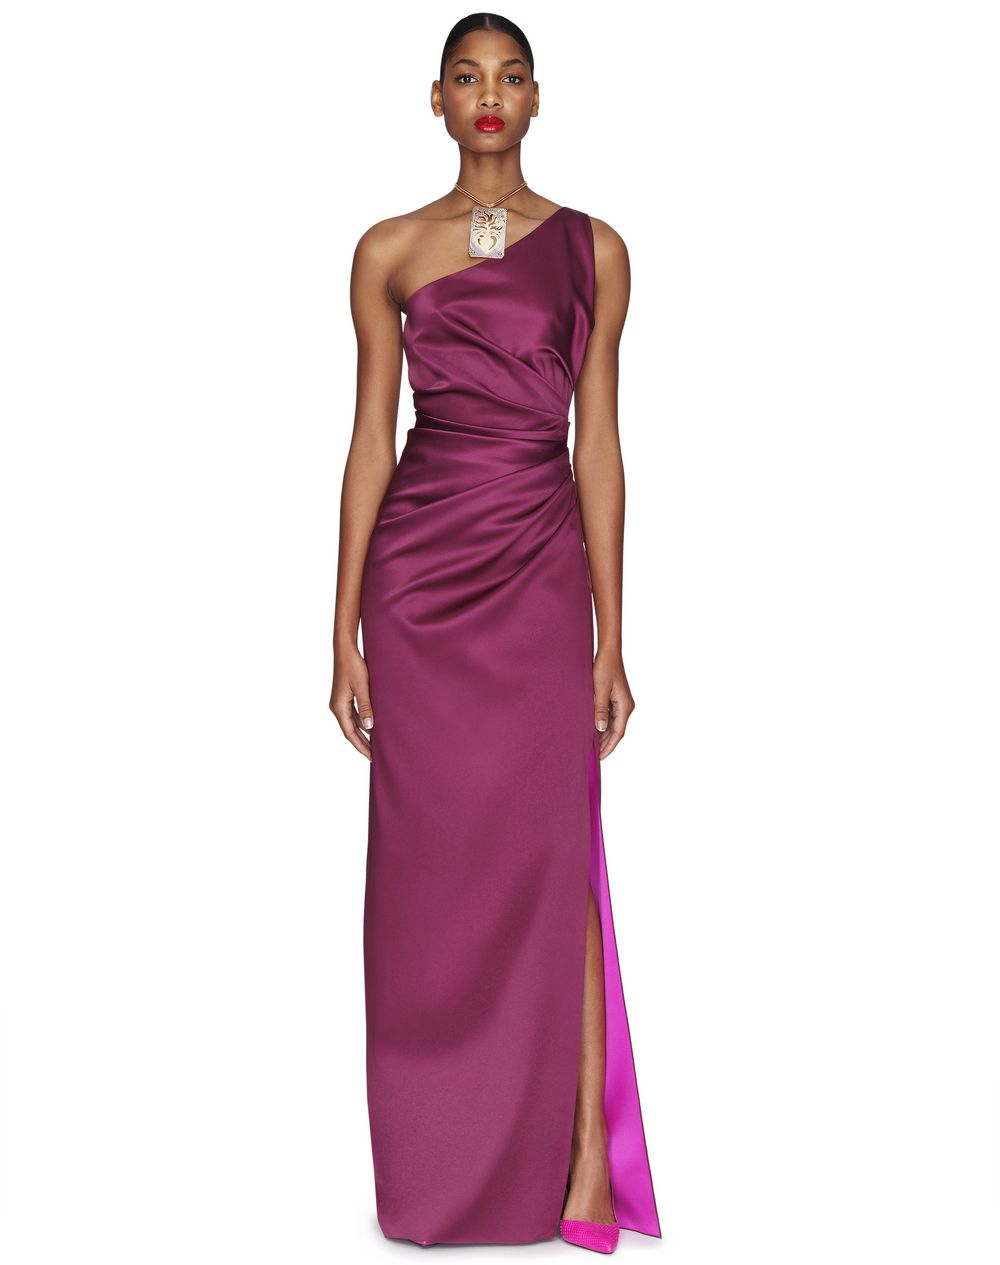 0cbae7cee2d83 Lanvin LONG PURPLE SLIT DRESS, Long Dress Women | Lanvin Online Store